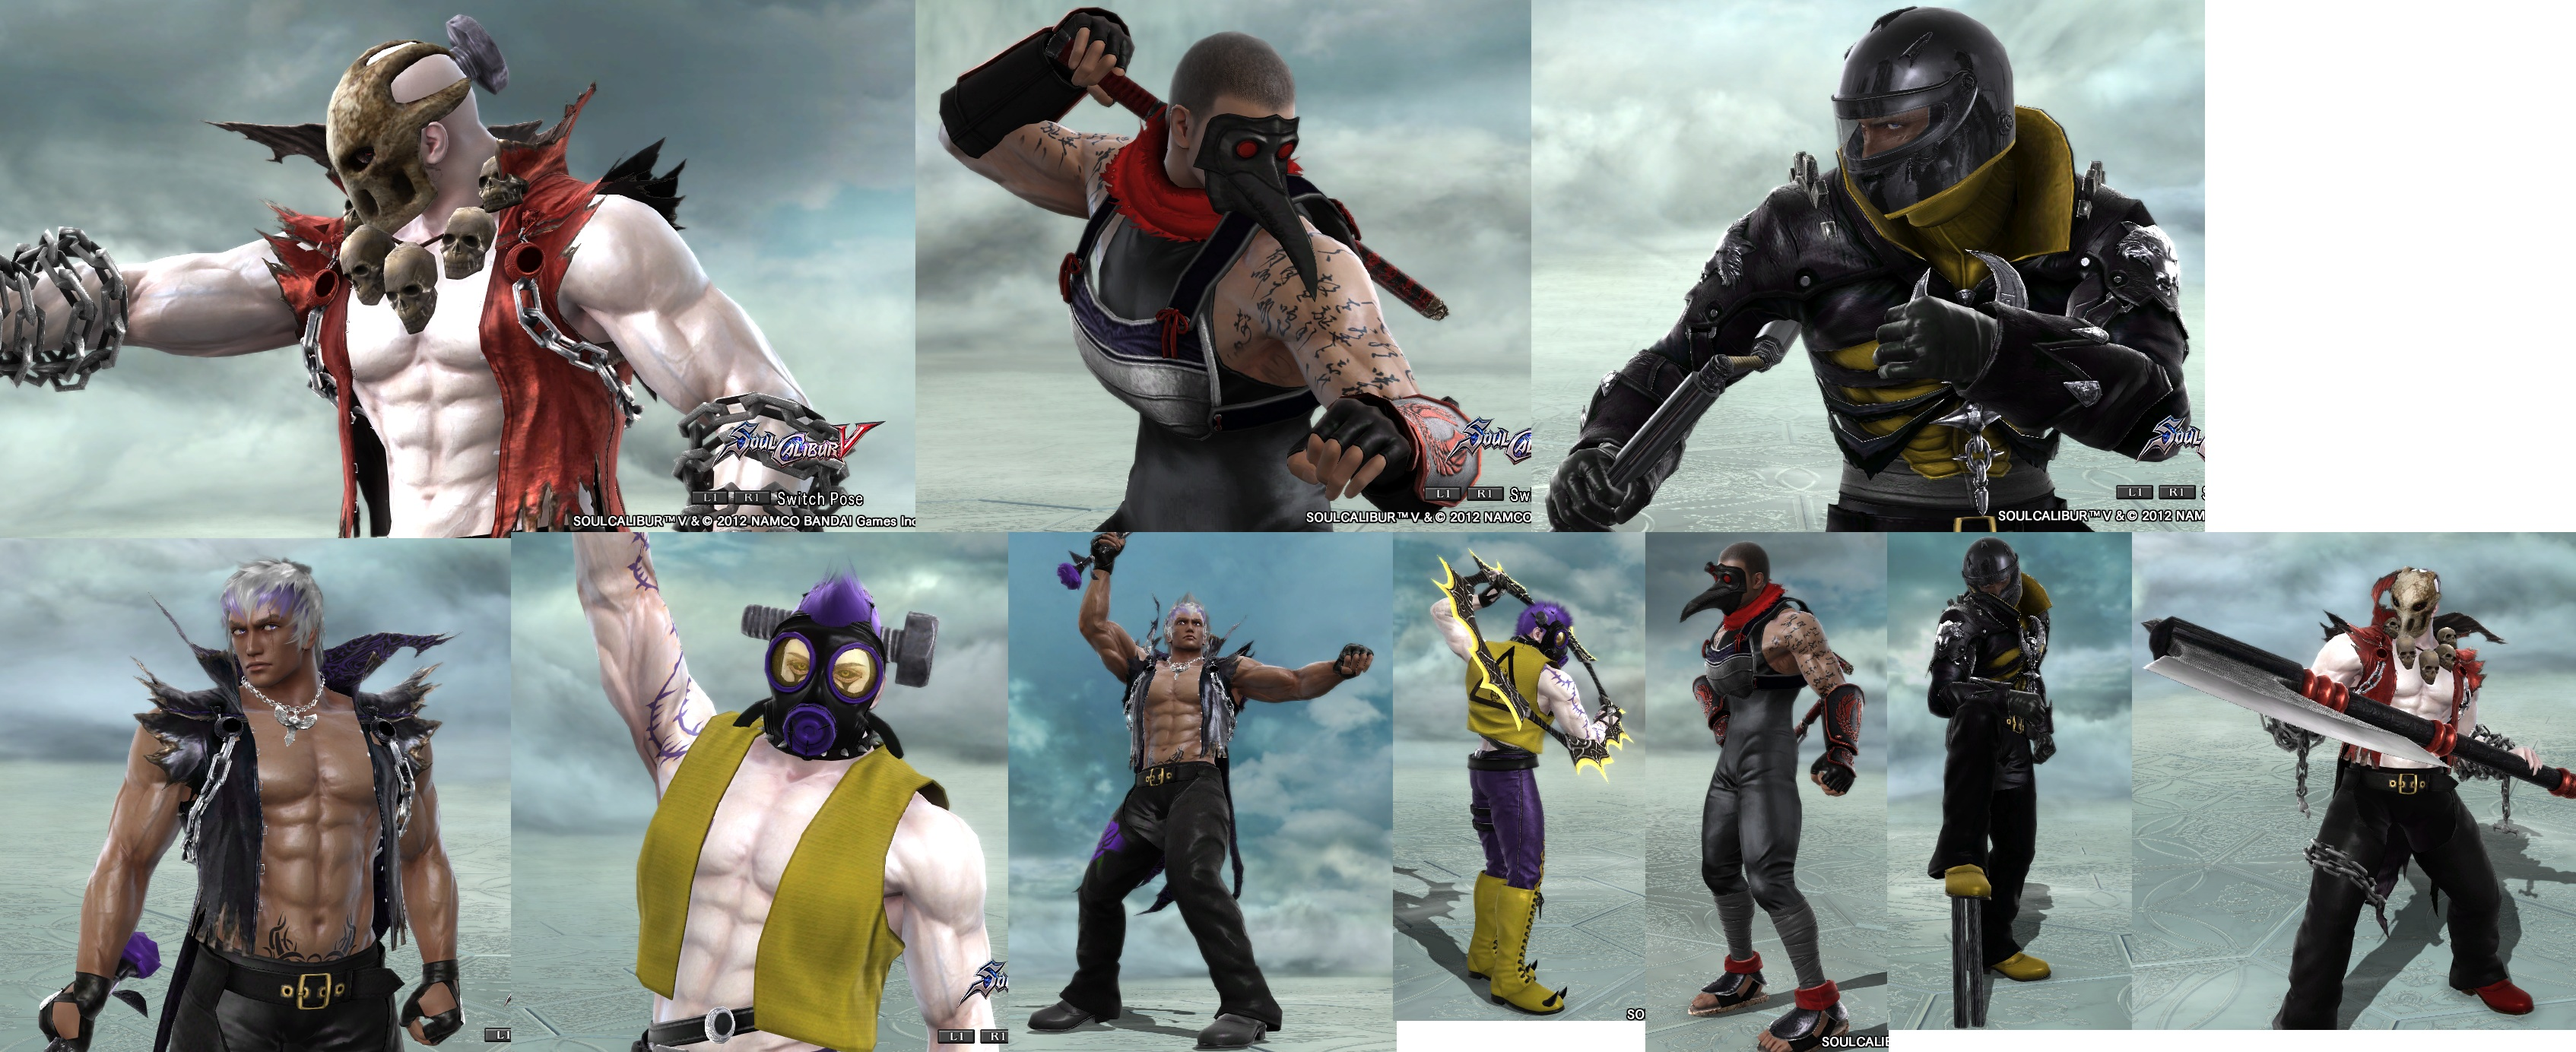 soul calibur v characters by 6dia6lo6 on DeviantArt